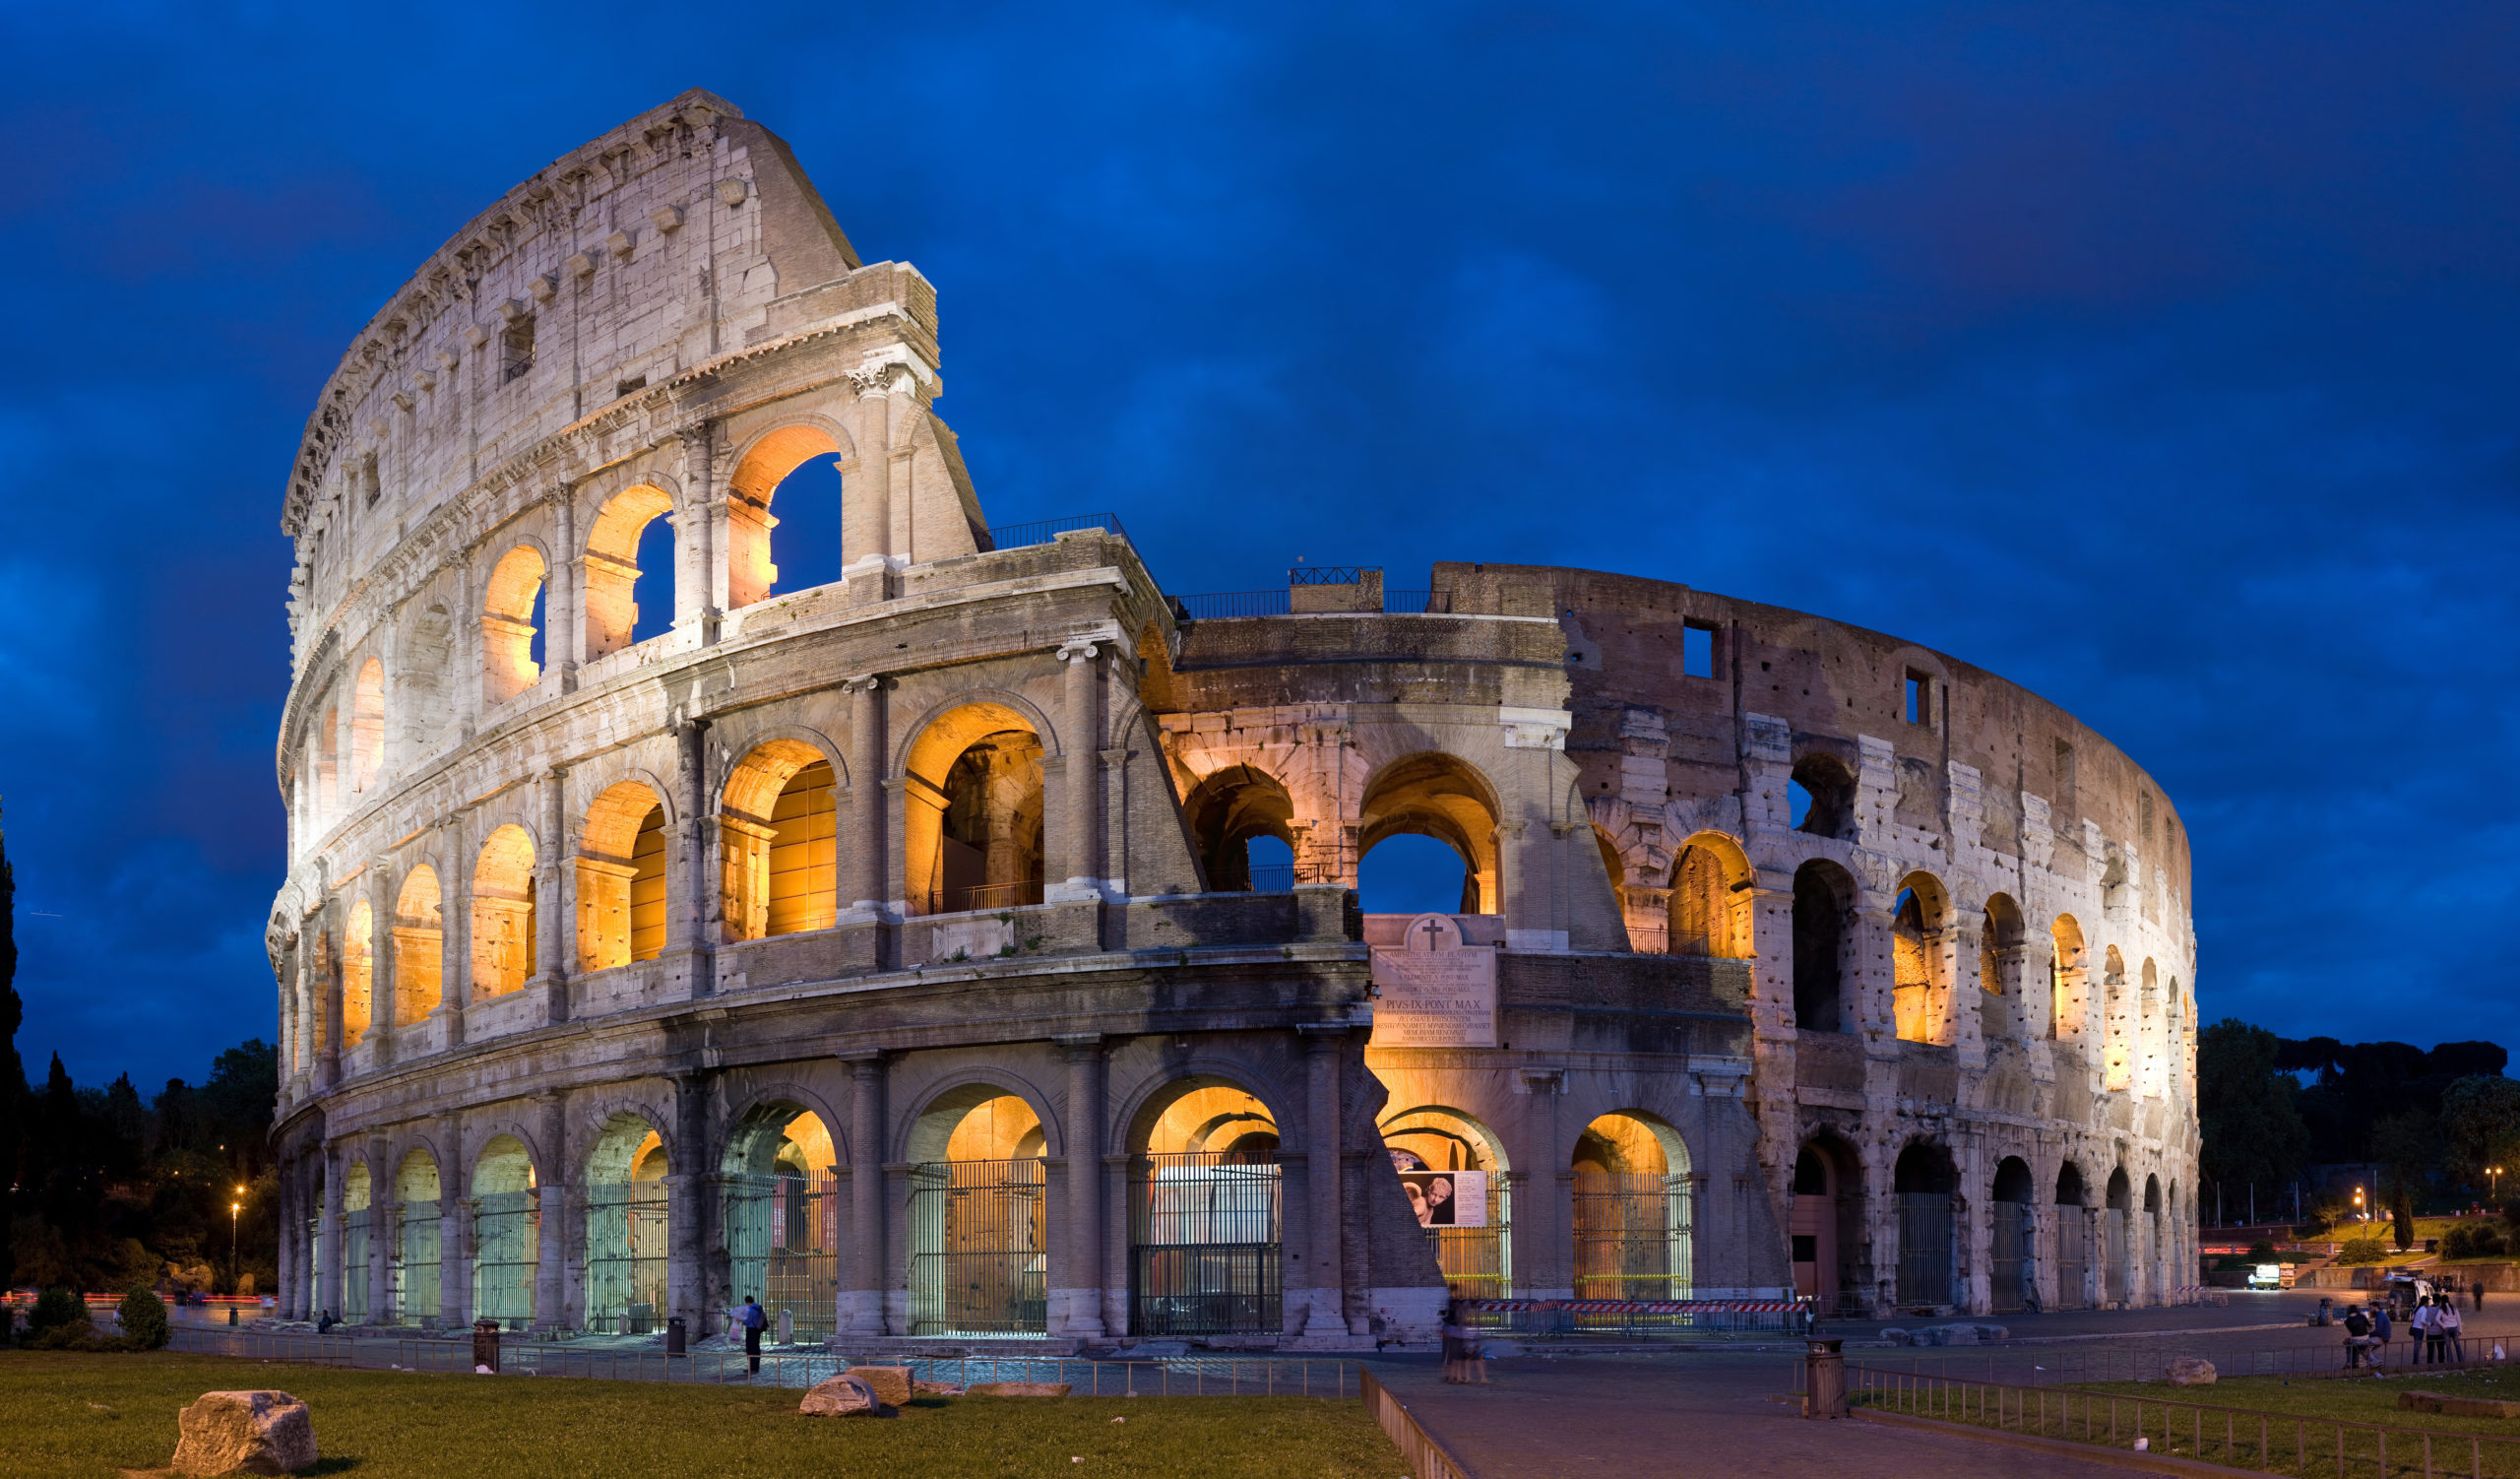 Rome - ancient Colosseum